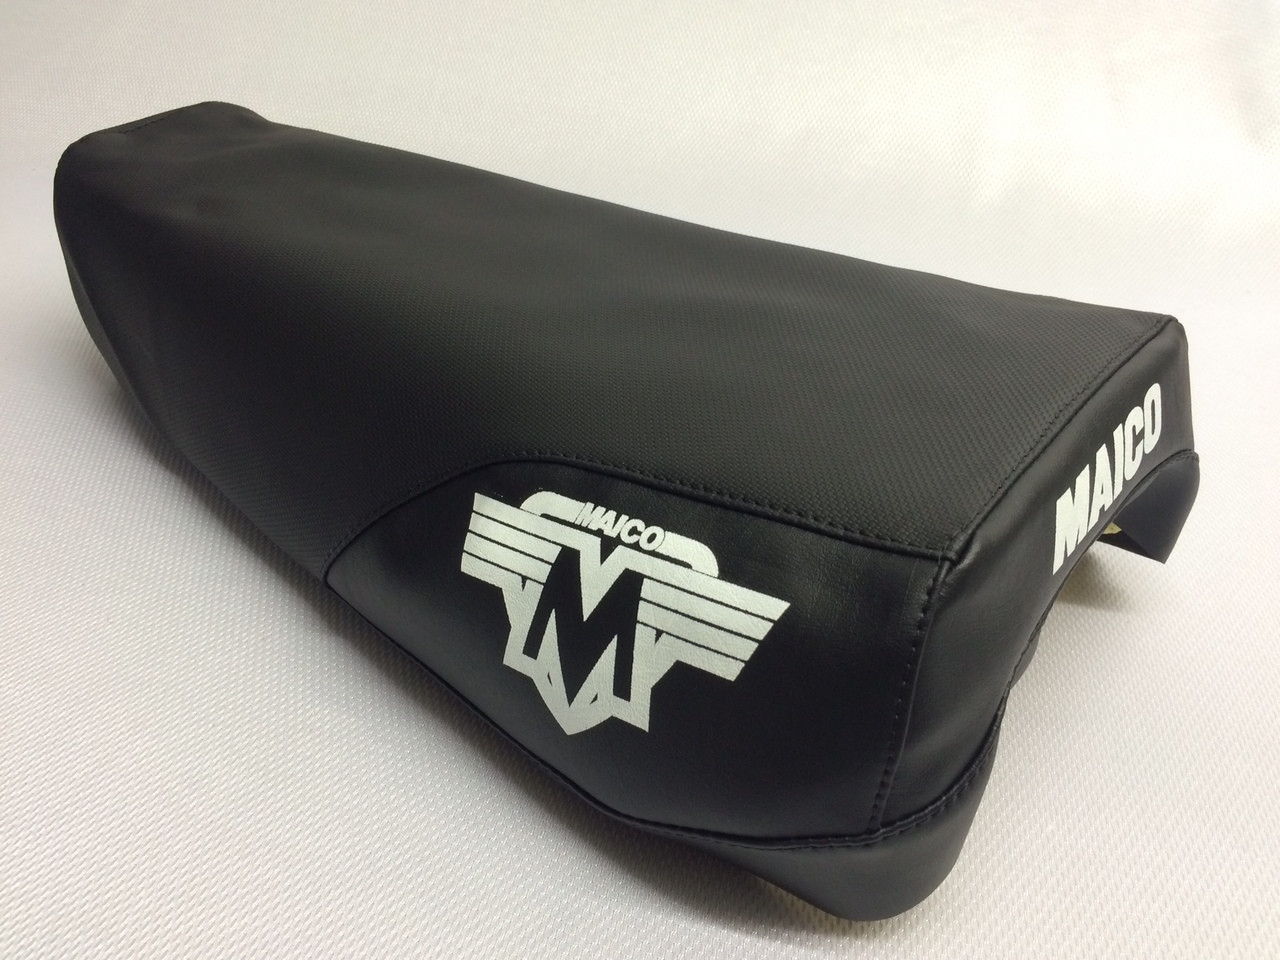 79 Maico Gripper With Wing Logo